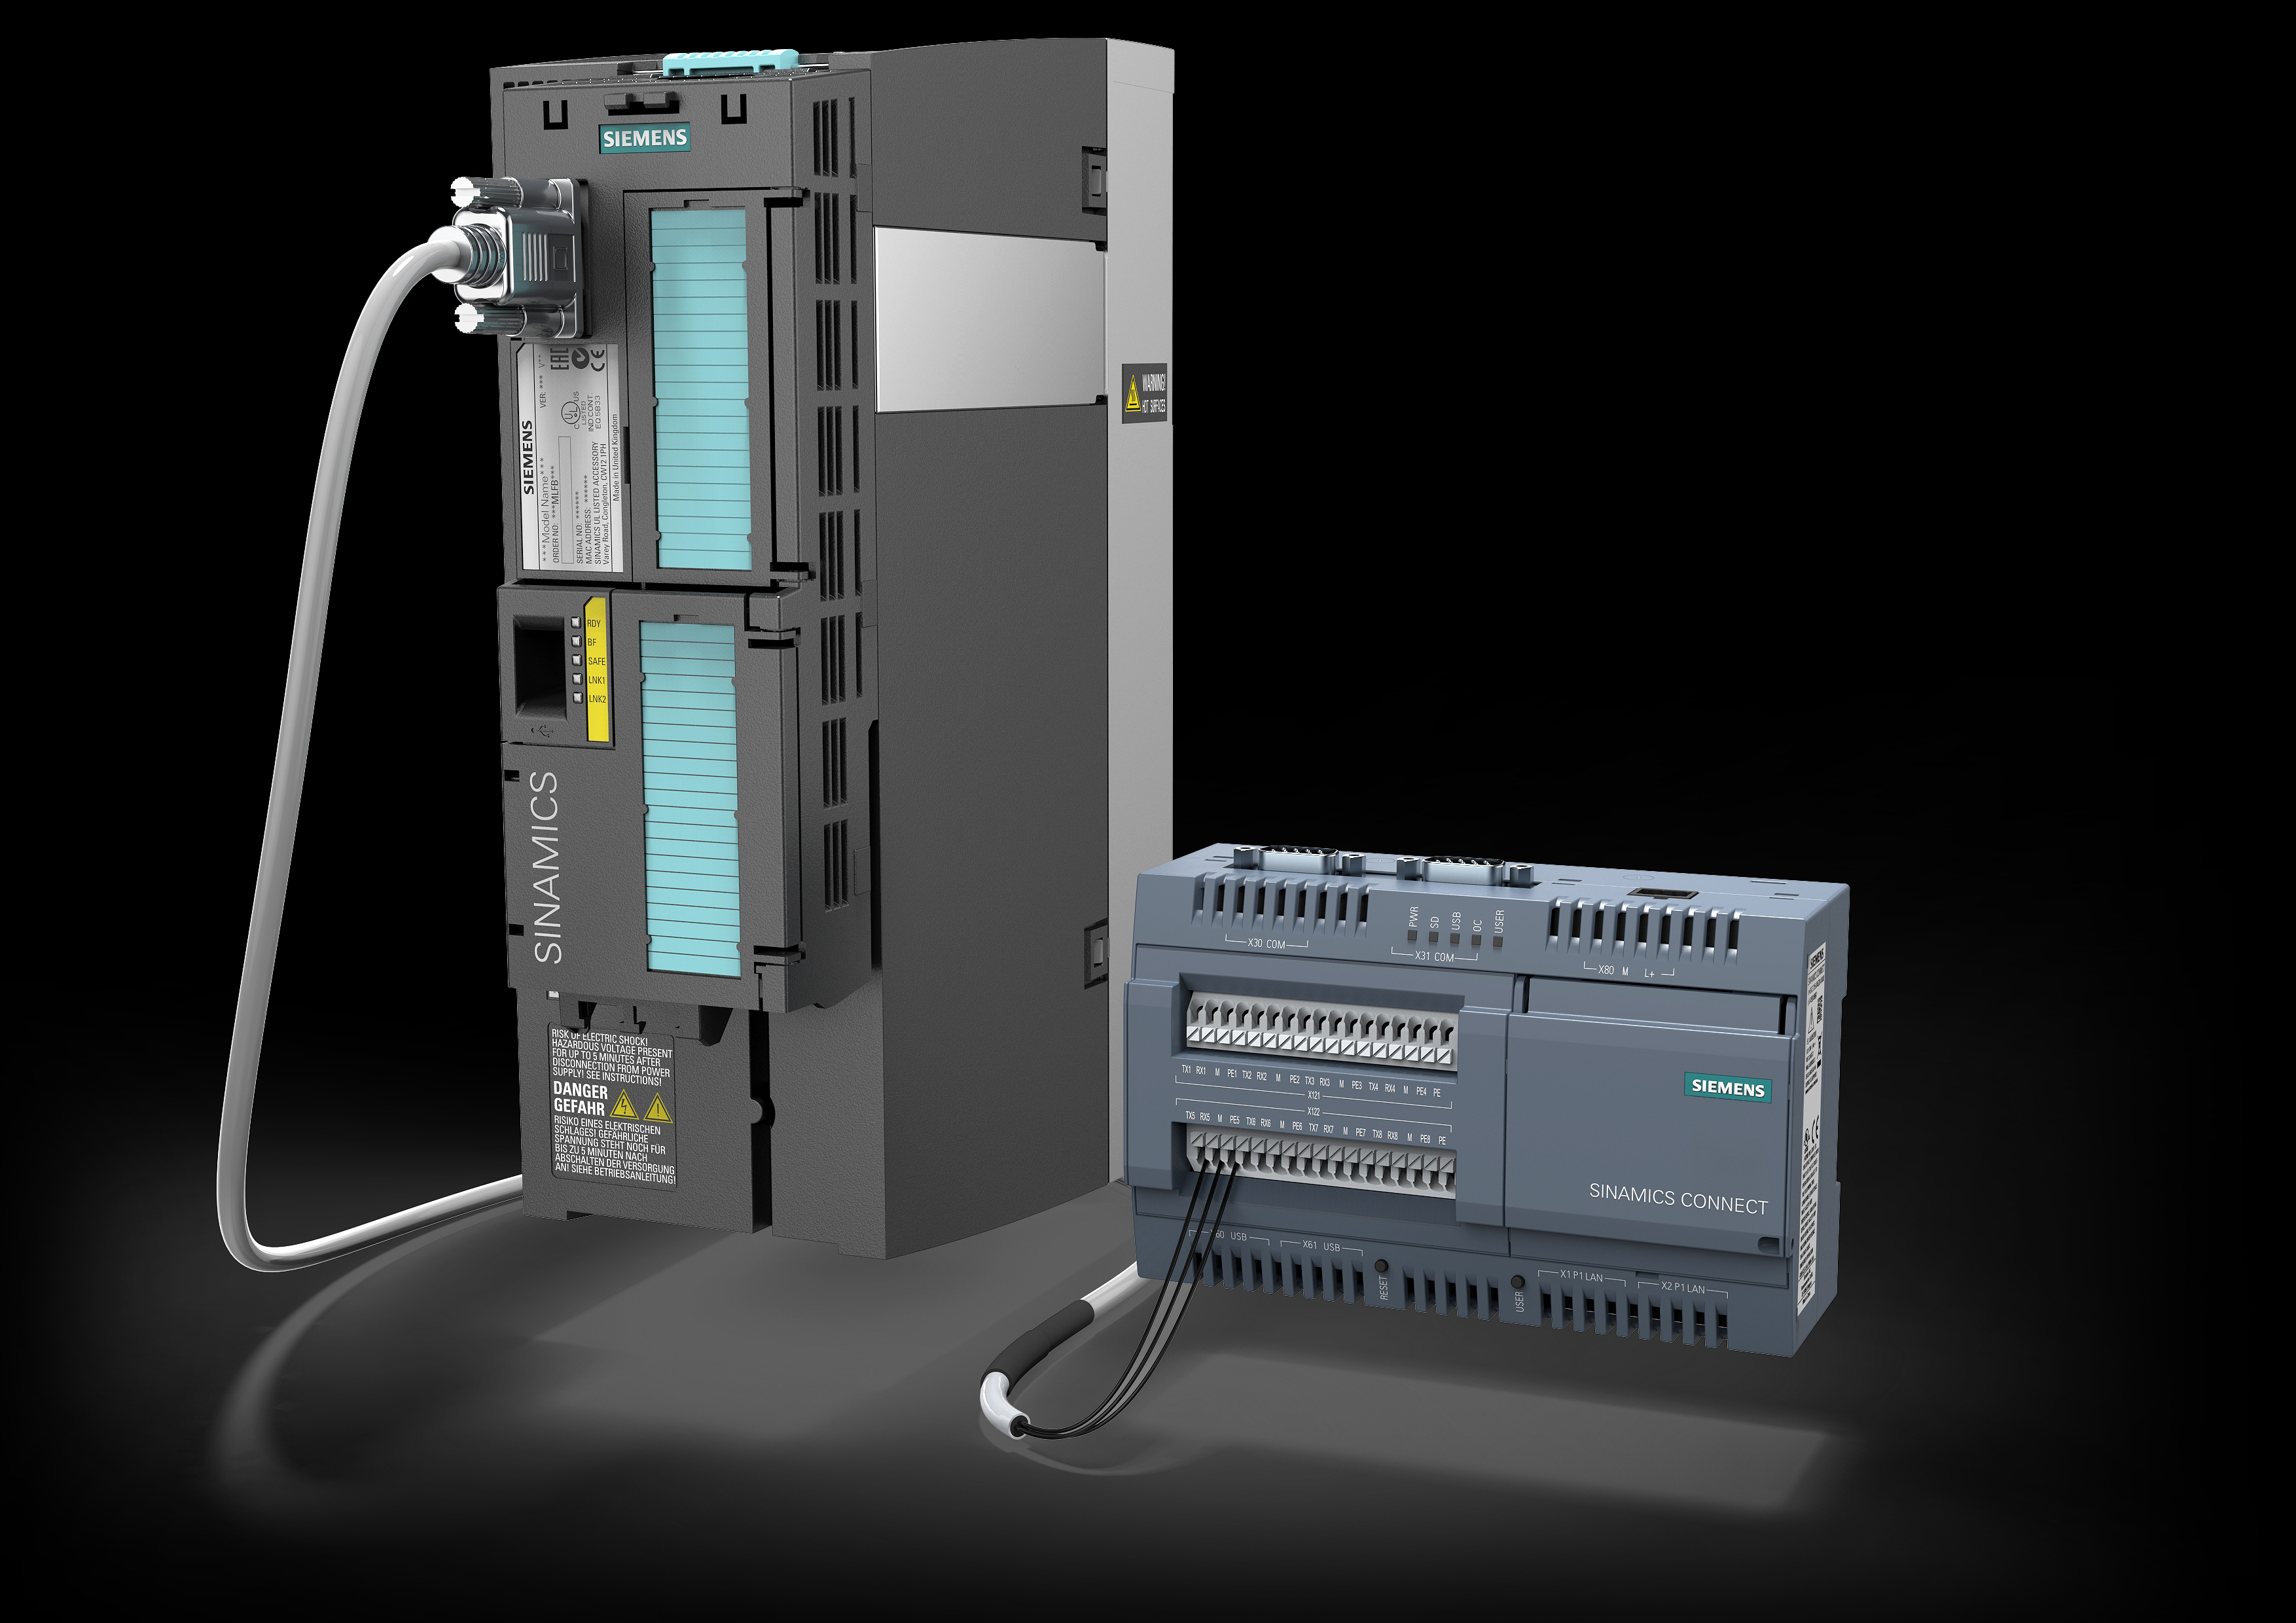 The new Sinamics Connect 300 from Siemens provides a simple plug-and-play solution for integrating converters of the Sinamics family into the IT world.